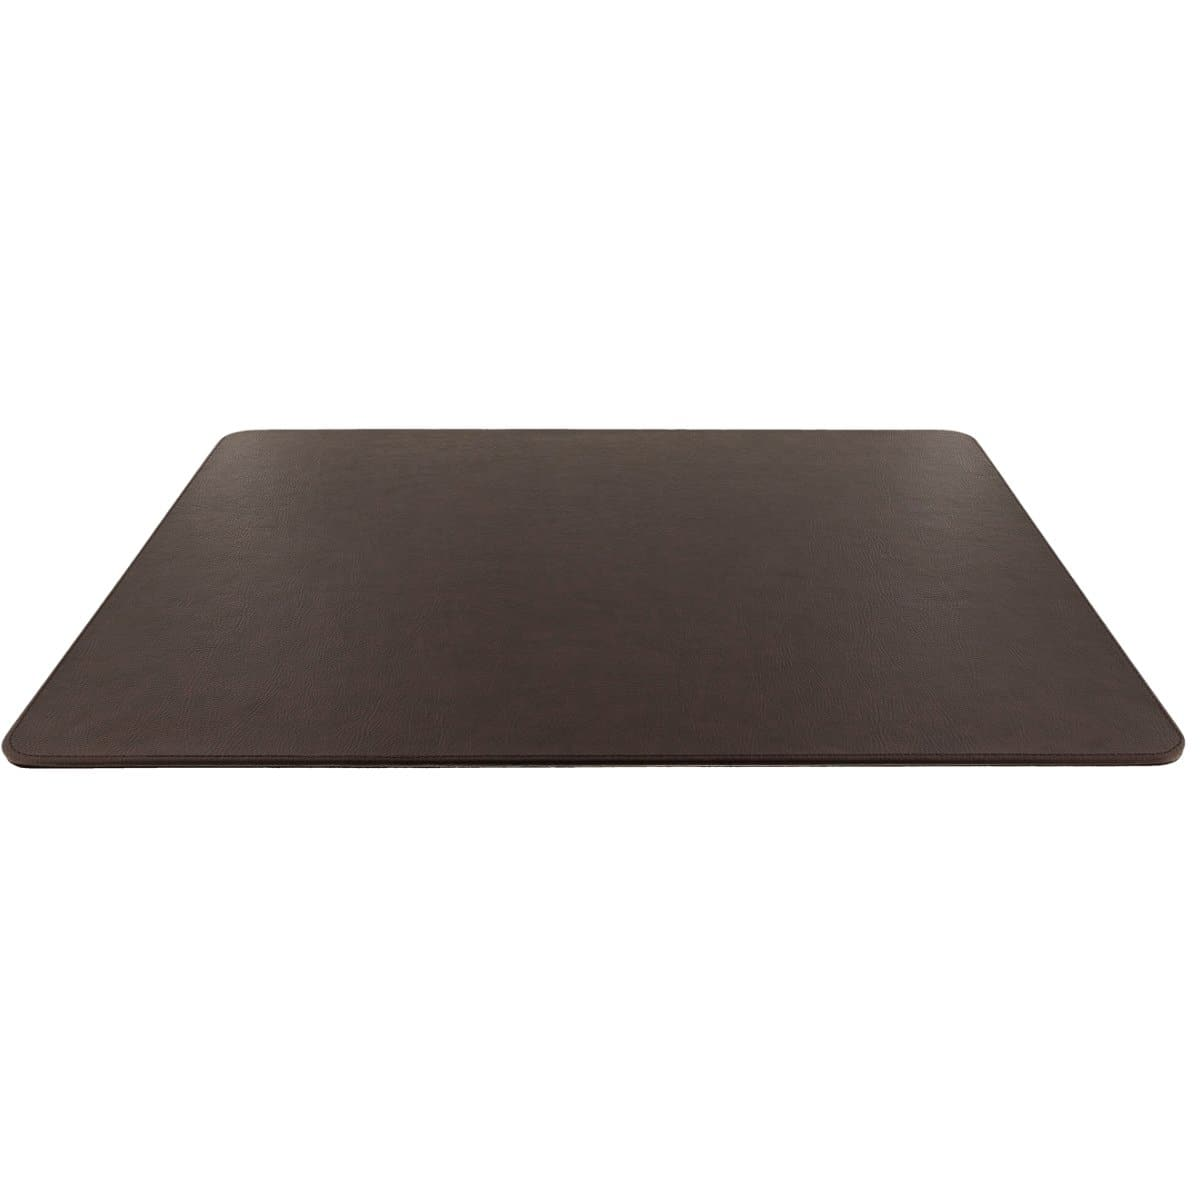 Konrad S. Desk Pad, 60 x 45cm, PU Leather, Brown